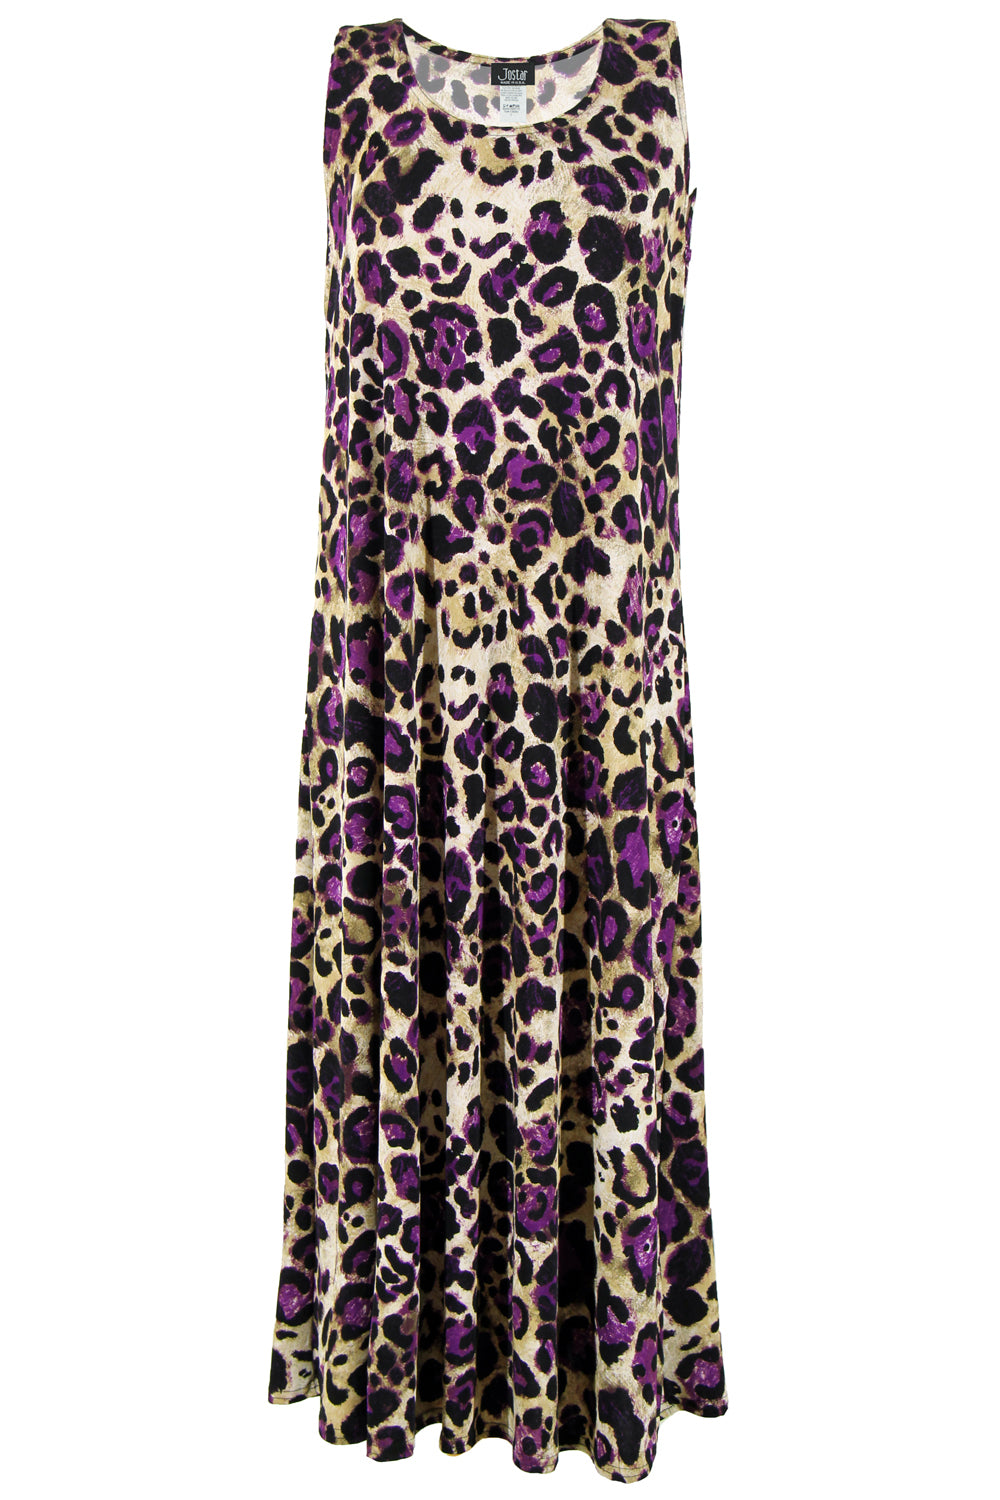 Jostar Women's Stretchy Tank Long Dress Sleeveless Plus Print, 700BN-TXP-W088 - Jostar Online